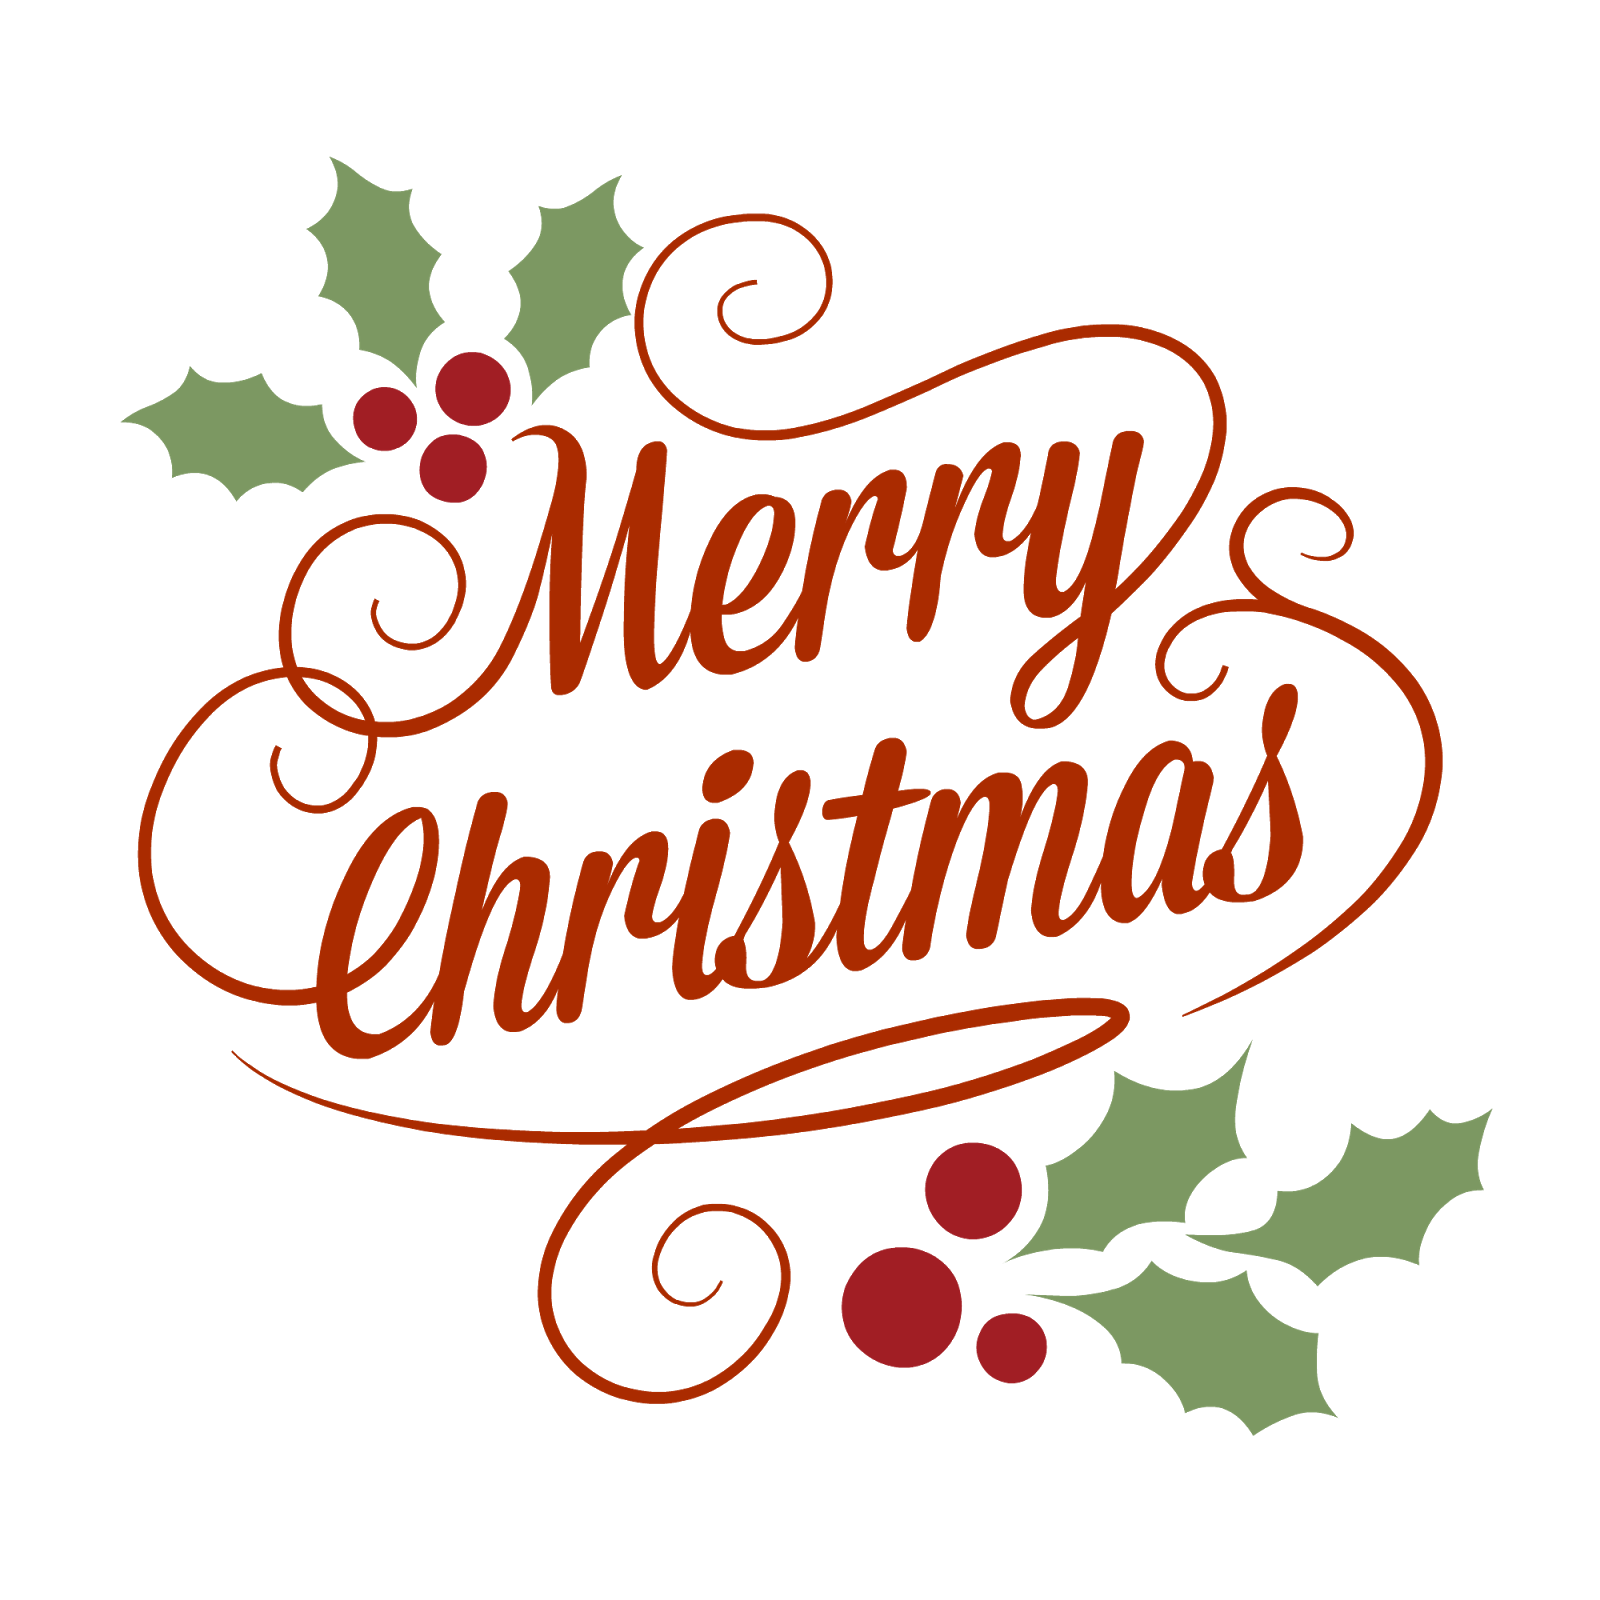 Merry Christmas Classical Vintage Sign transparent PNG.